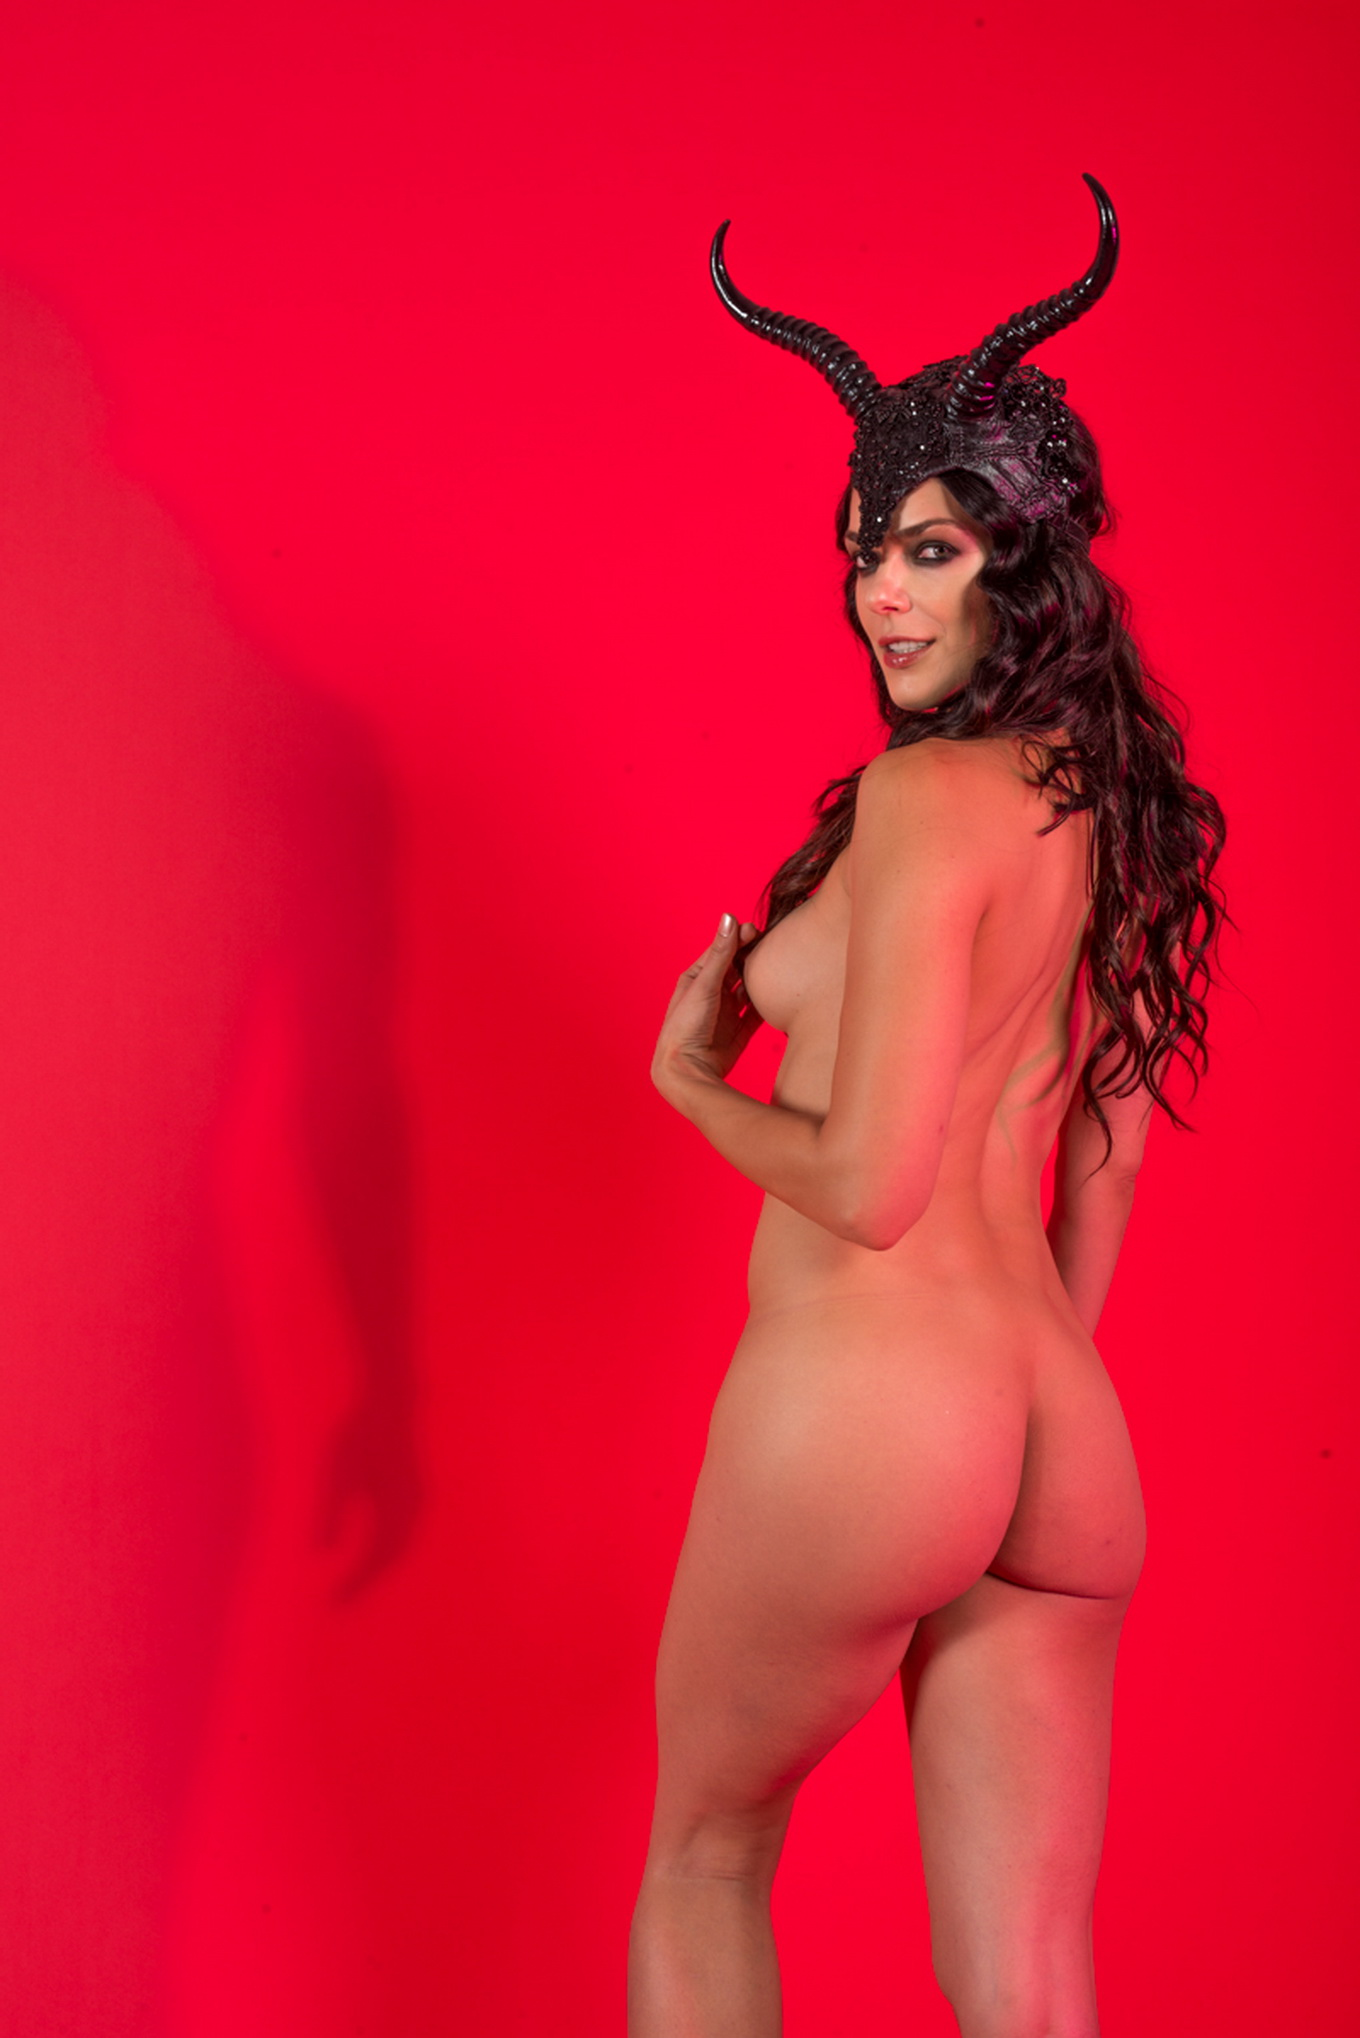 photoshoot Adrianne curry nude